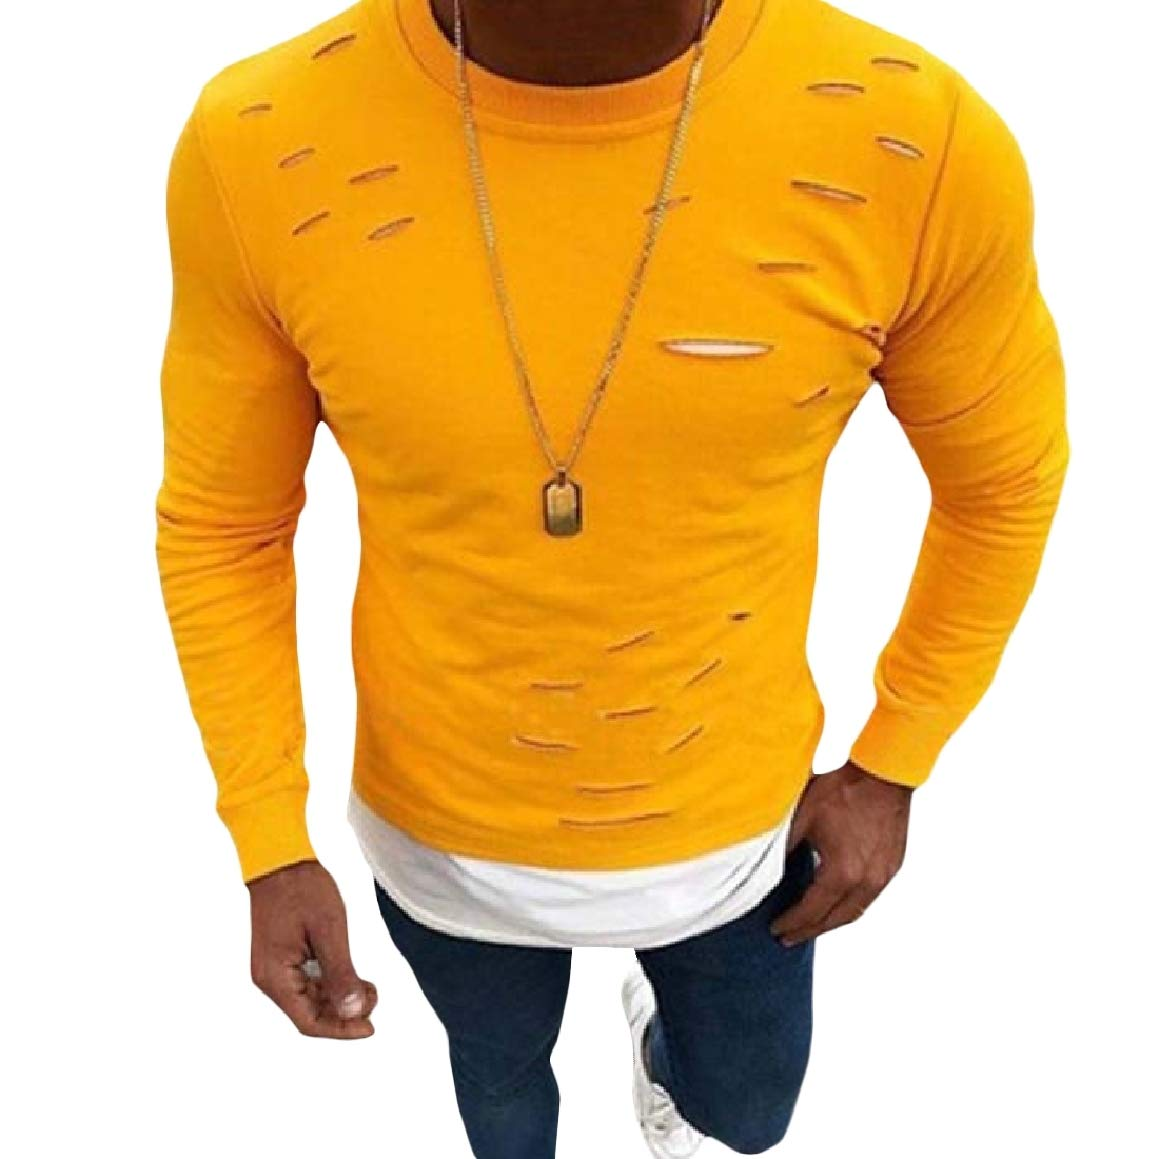 Romantc Mens Ripped Hole Pullover Crew Neck False Two Pieces Sweatshirts Top